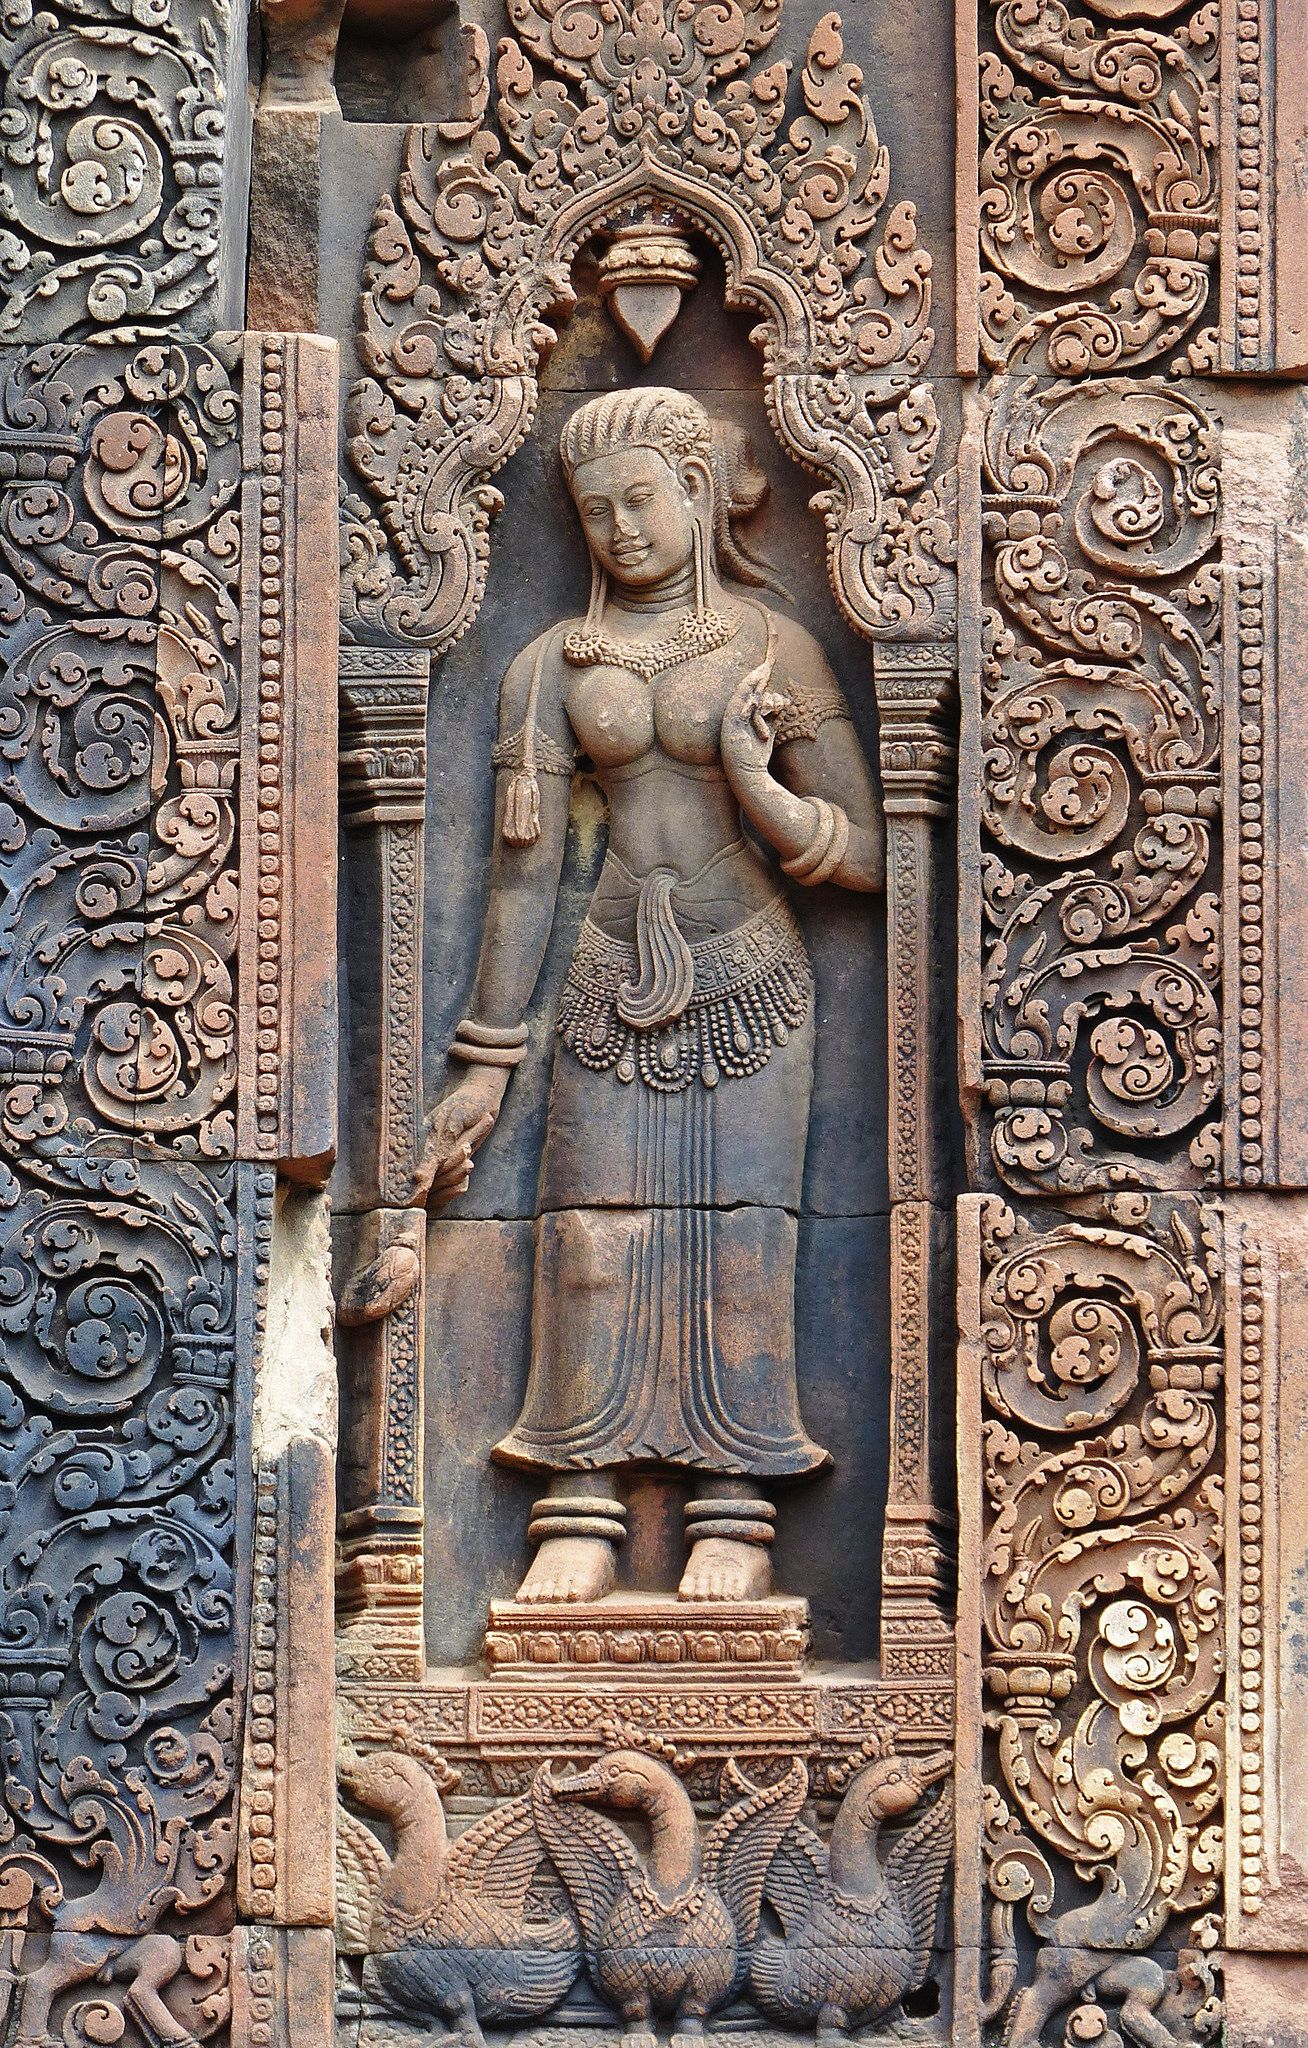 Free images old cambodia culture temple architecture